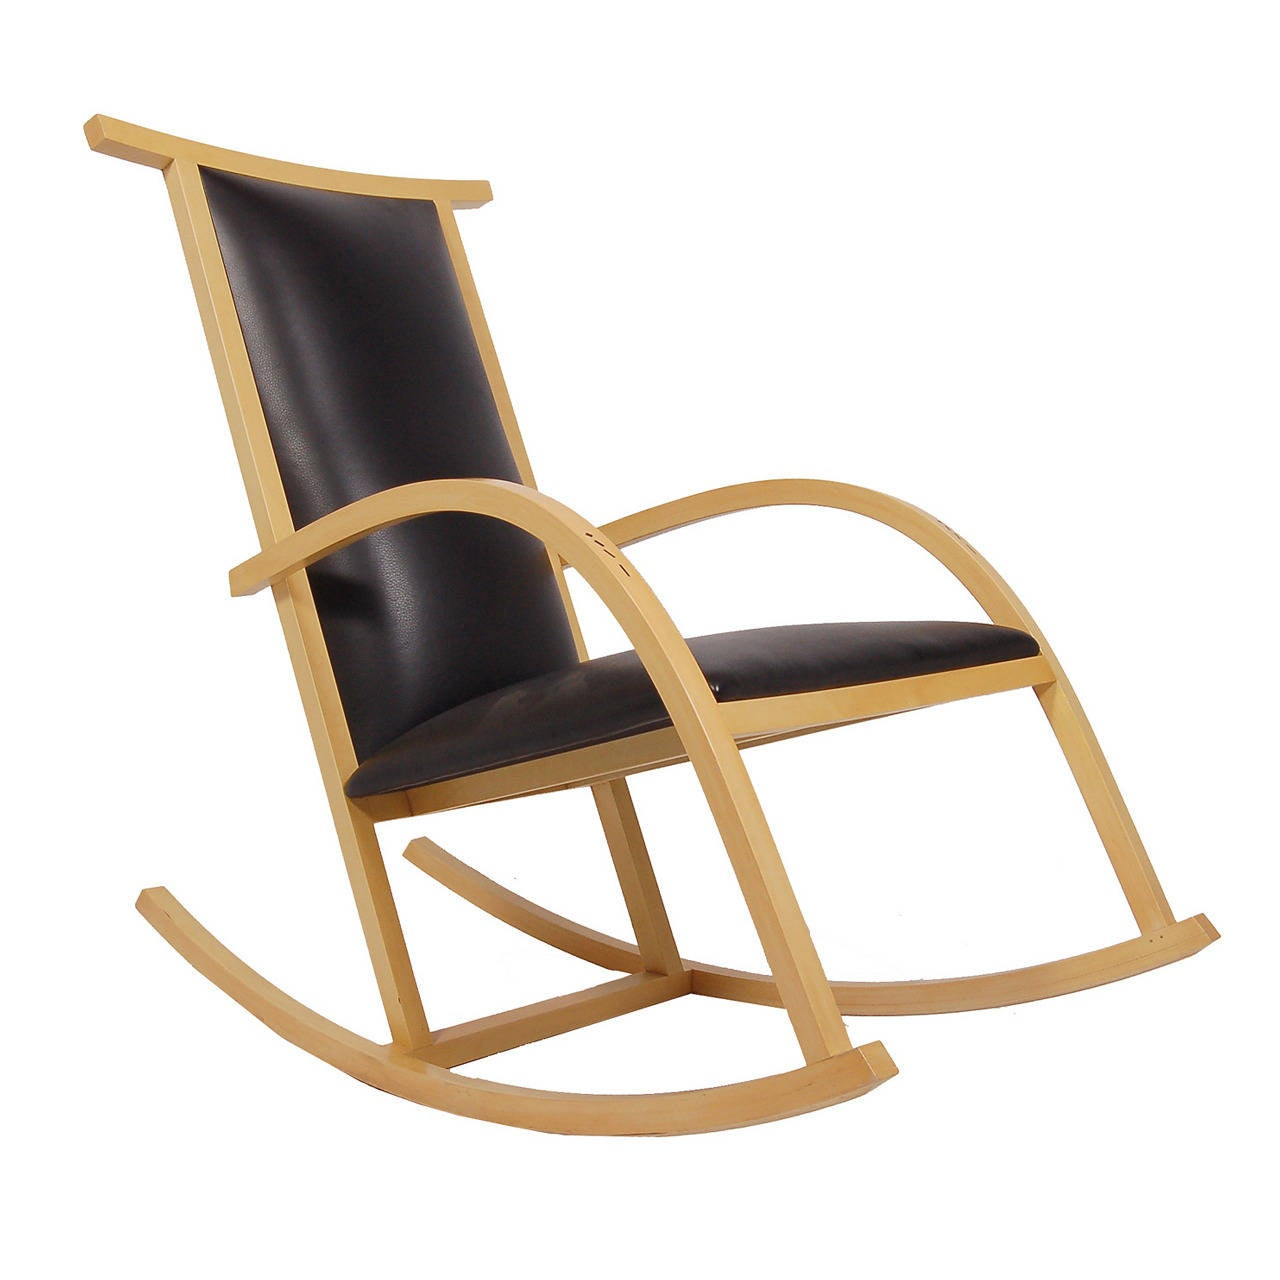 Rocker chair by carlos riart for knoll for sale at 1stdibs - Knoll rocking chair ...